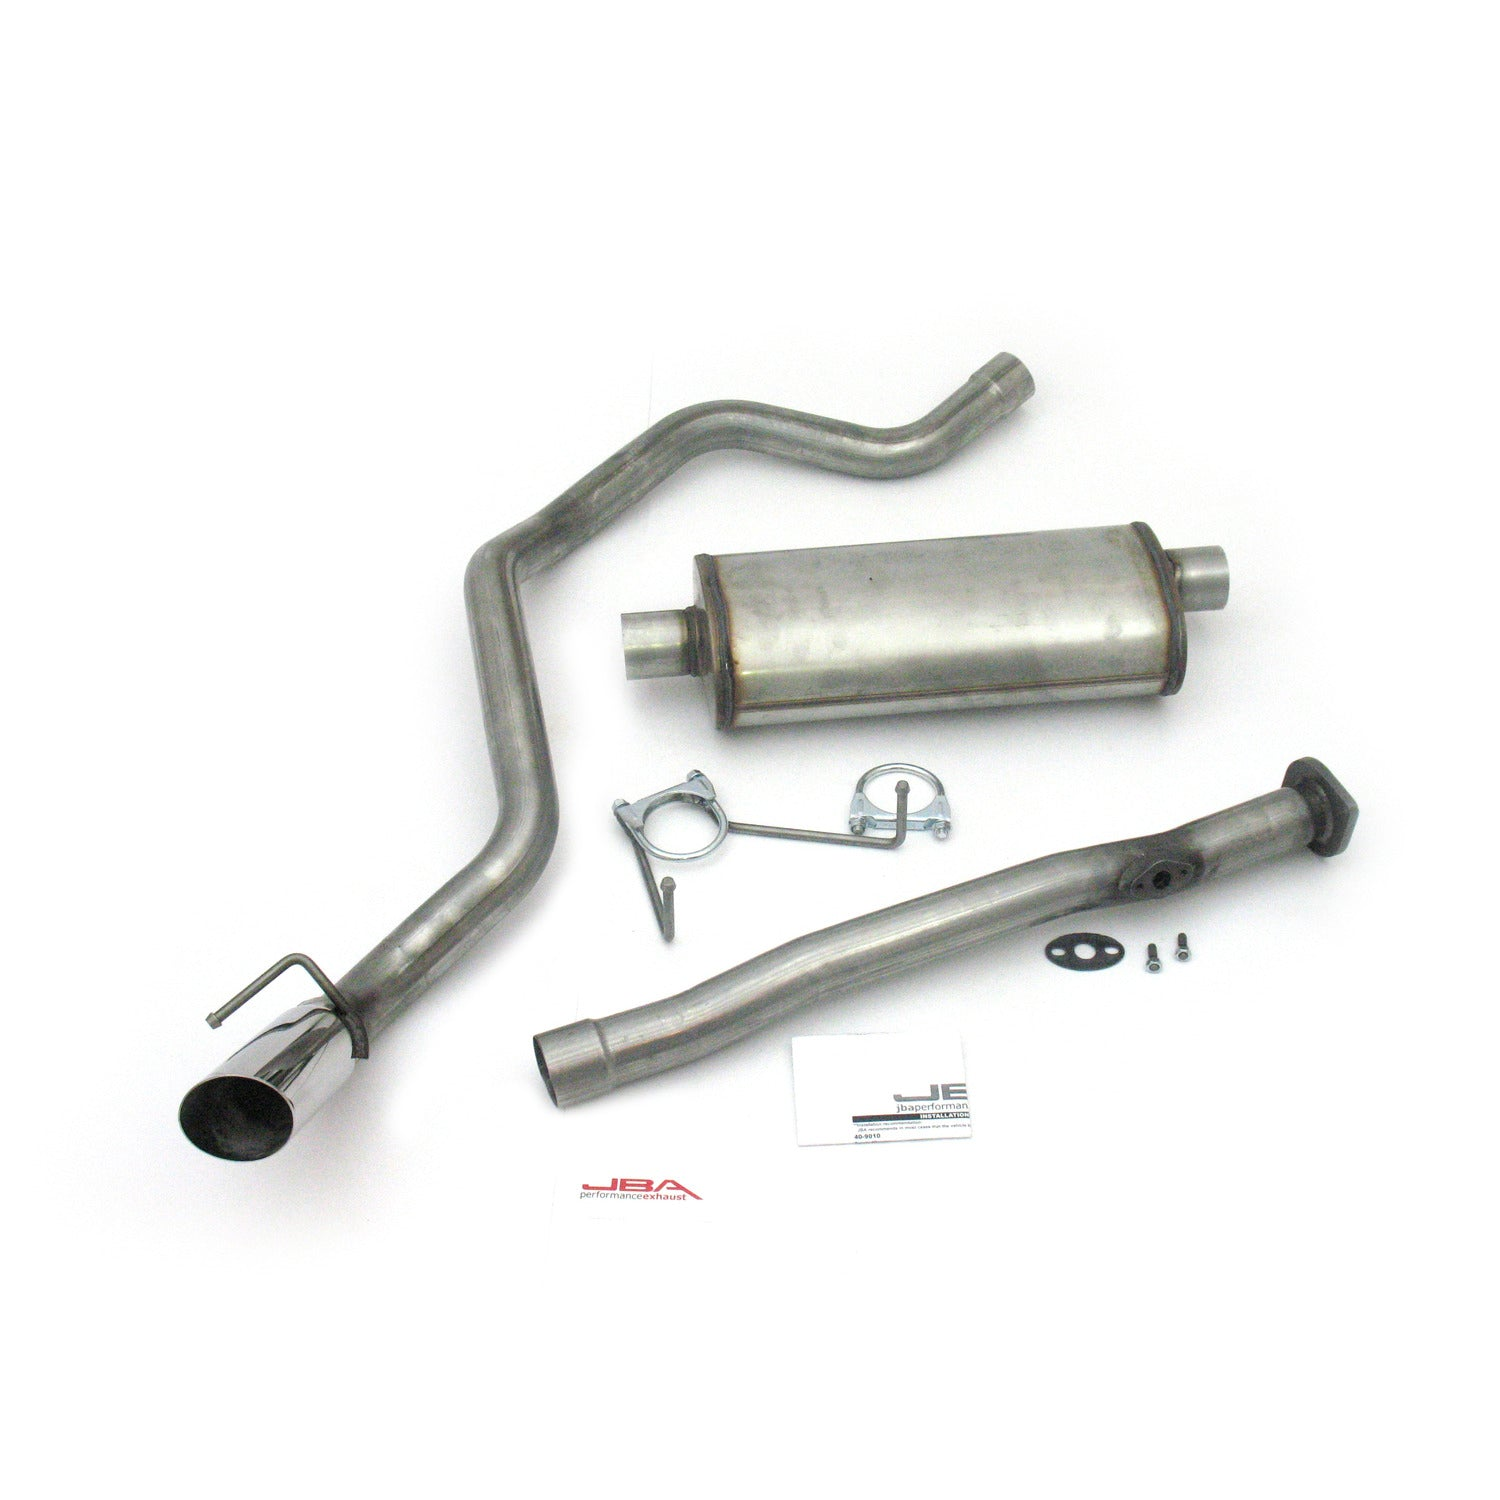 "JBA Performance Exhaust 40-9010 2 1/4"" Stainless Steel Exhaust System 96-98 4Runner 2.7/3.4L 2/4 Wheel Drive"